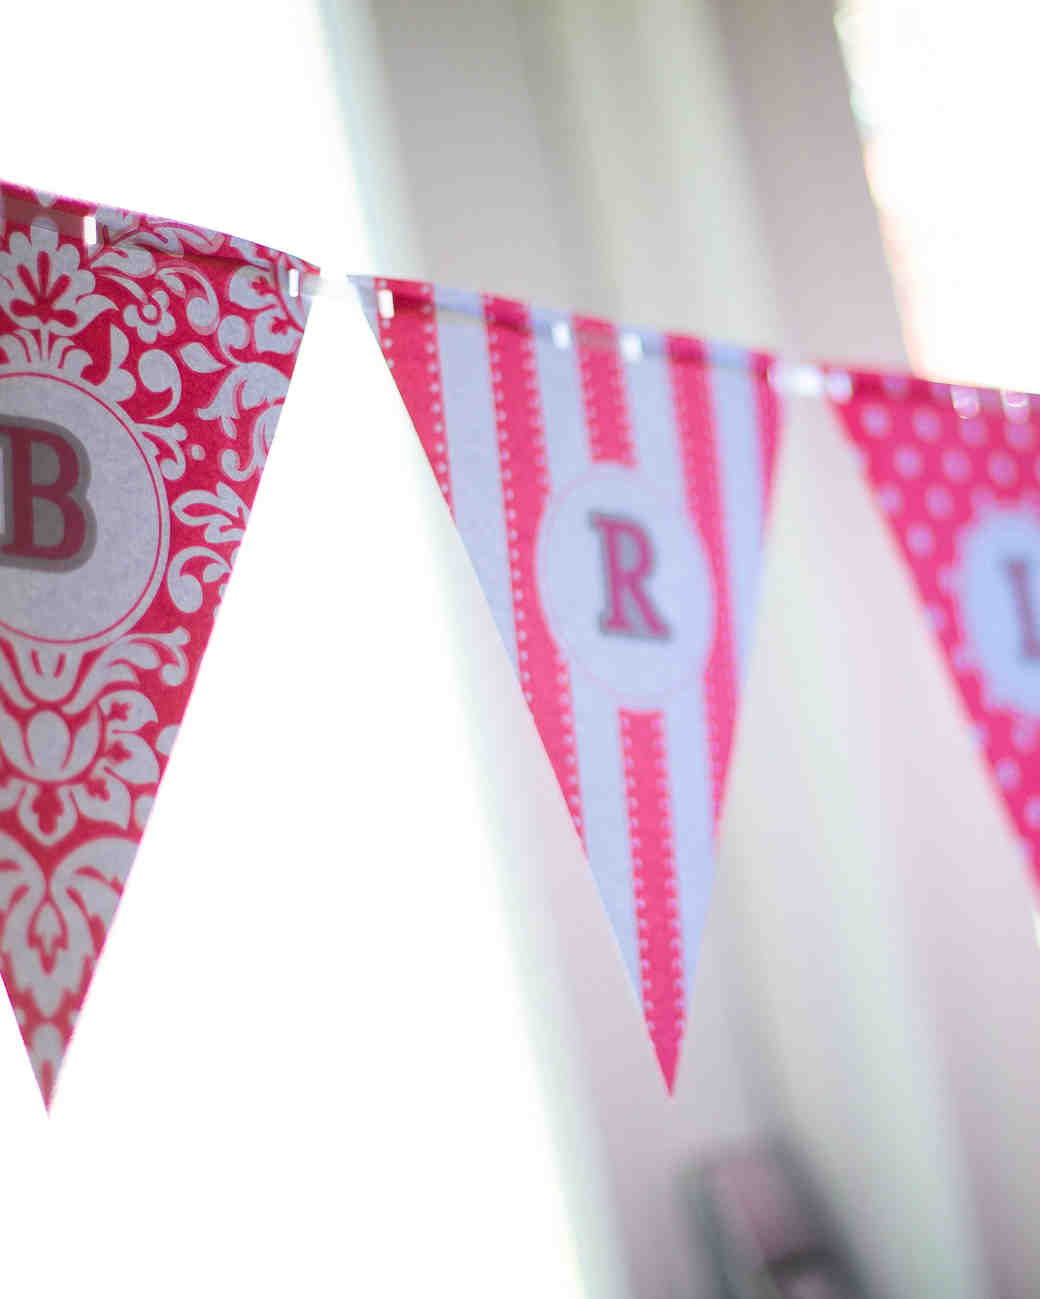 fashionable-hostess-bridal-shower-pennant-flag-banner-0416.jpg